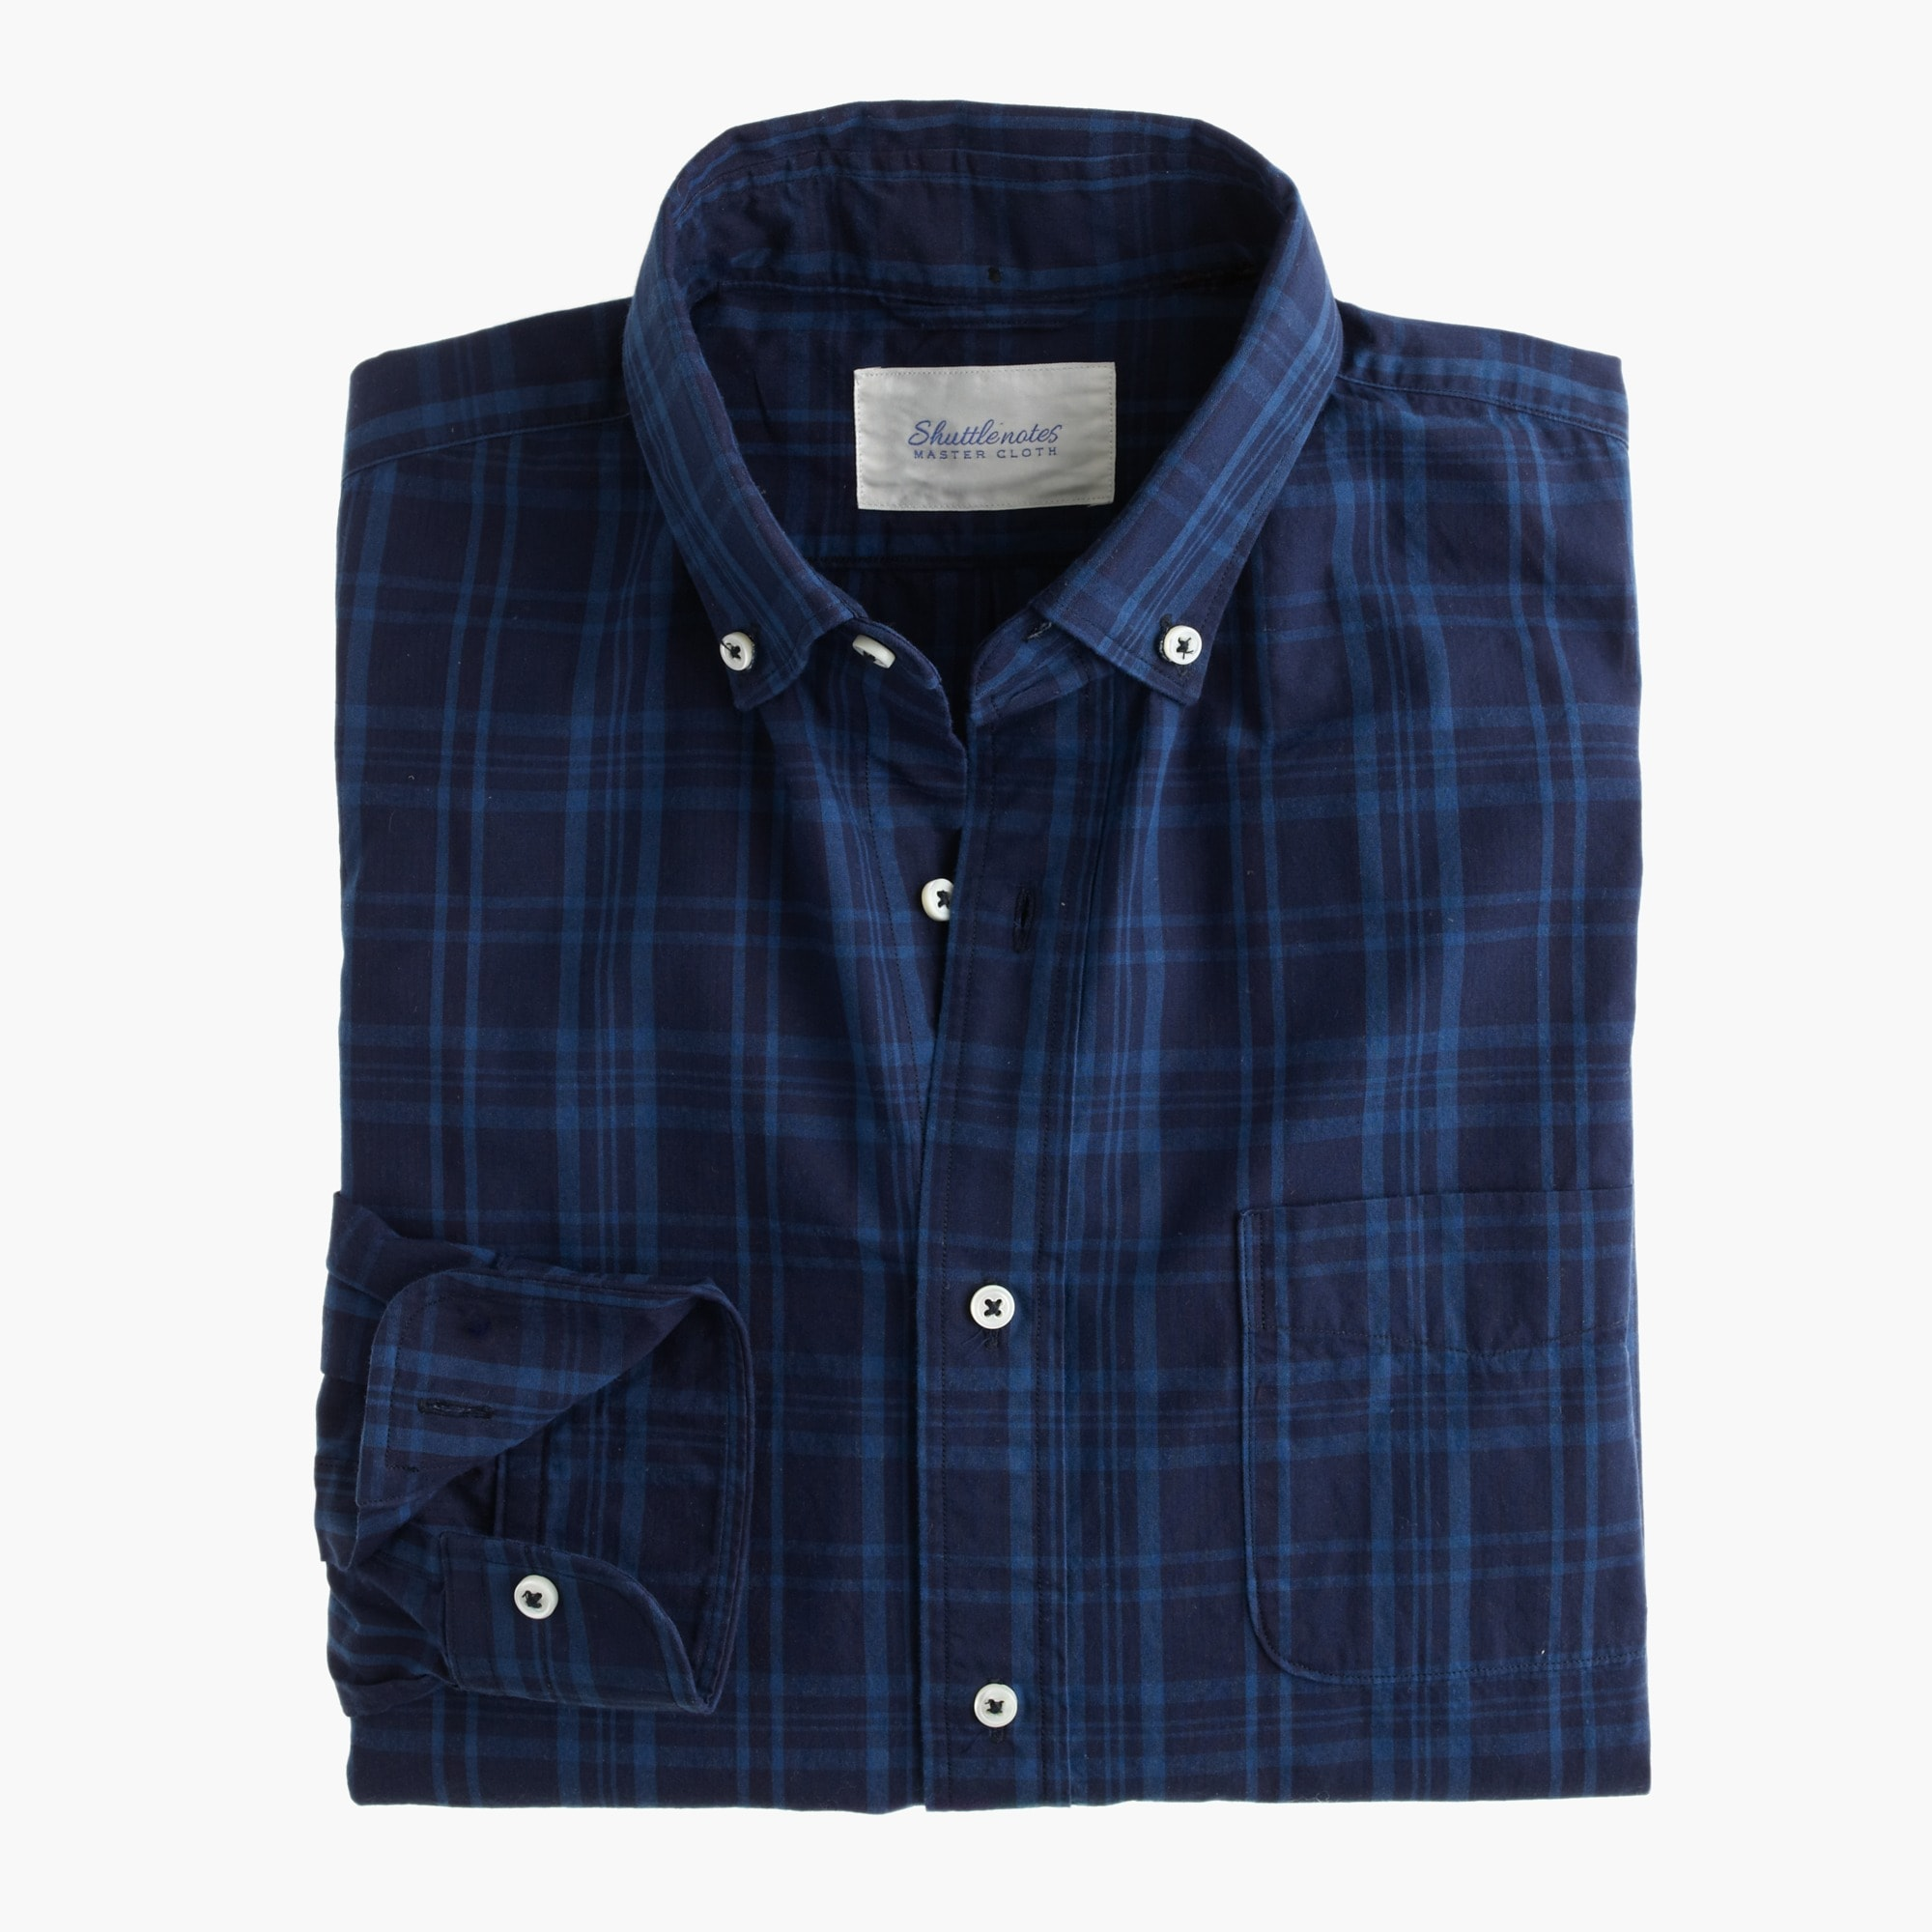 Image 1 for Shuttle Notes® indigo poplin shirt